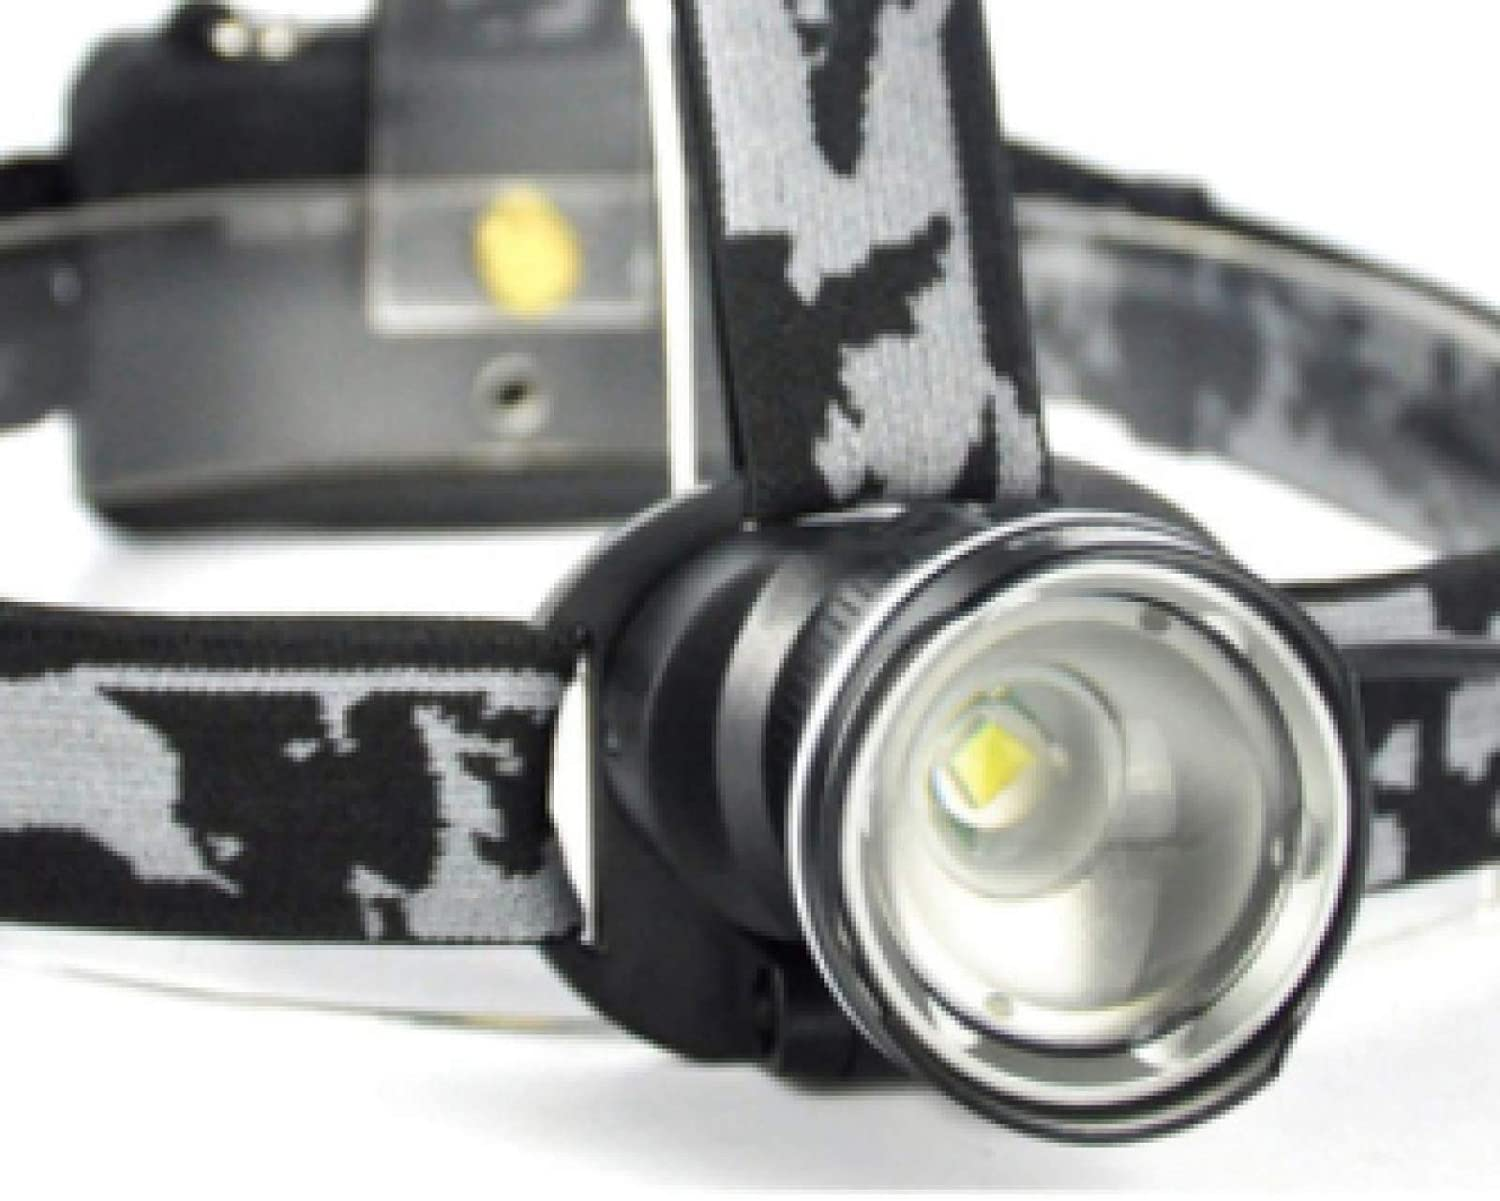 Head Torch Headlamp Headlamp 3-Mode Zoom Headlight High Power 3000LM Head Torch 18650 Rechargeable Hunting Flashlight As The Picture Show